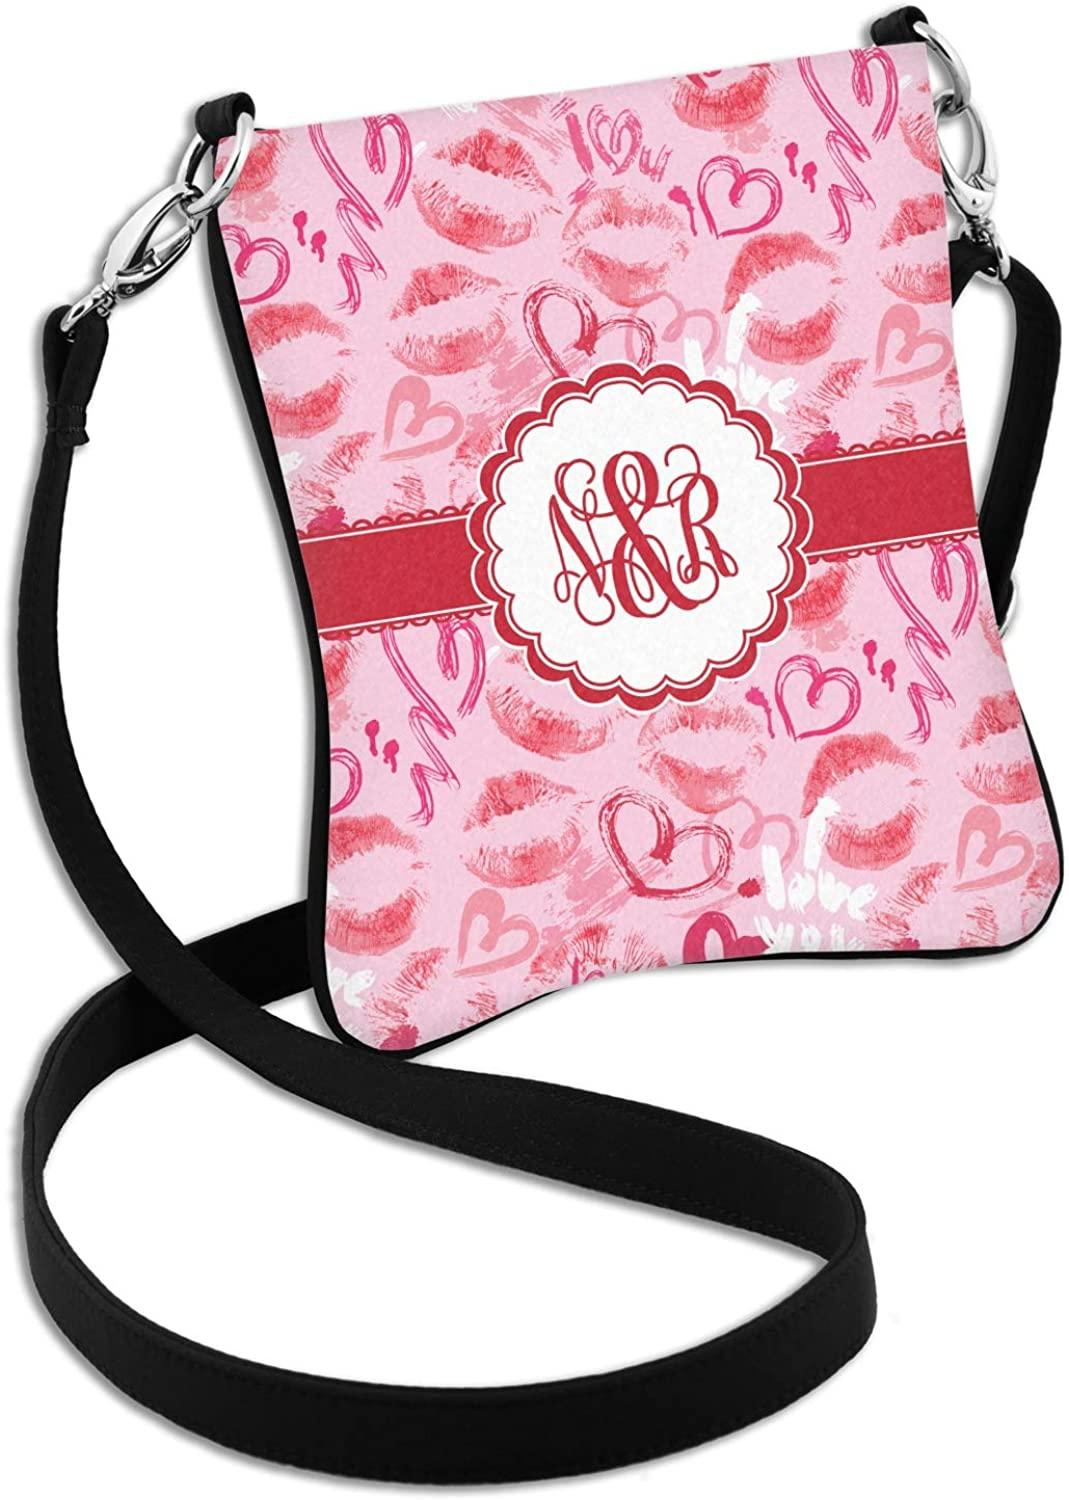 Personalized Lips n Hearts Cross Body Bag 2 Sizes